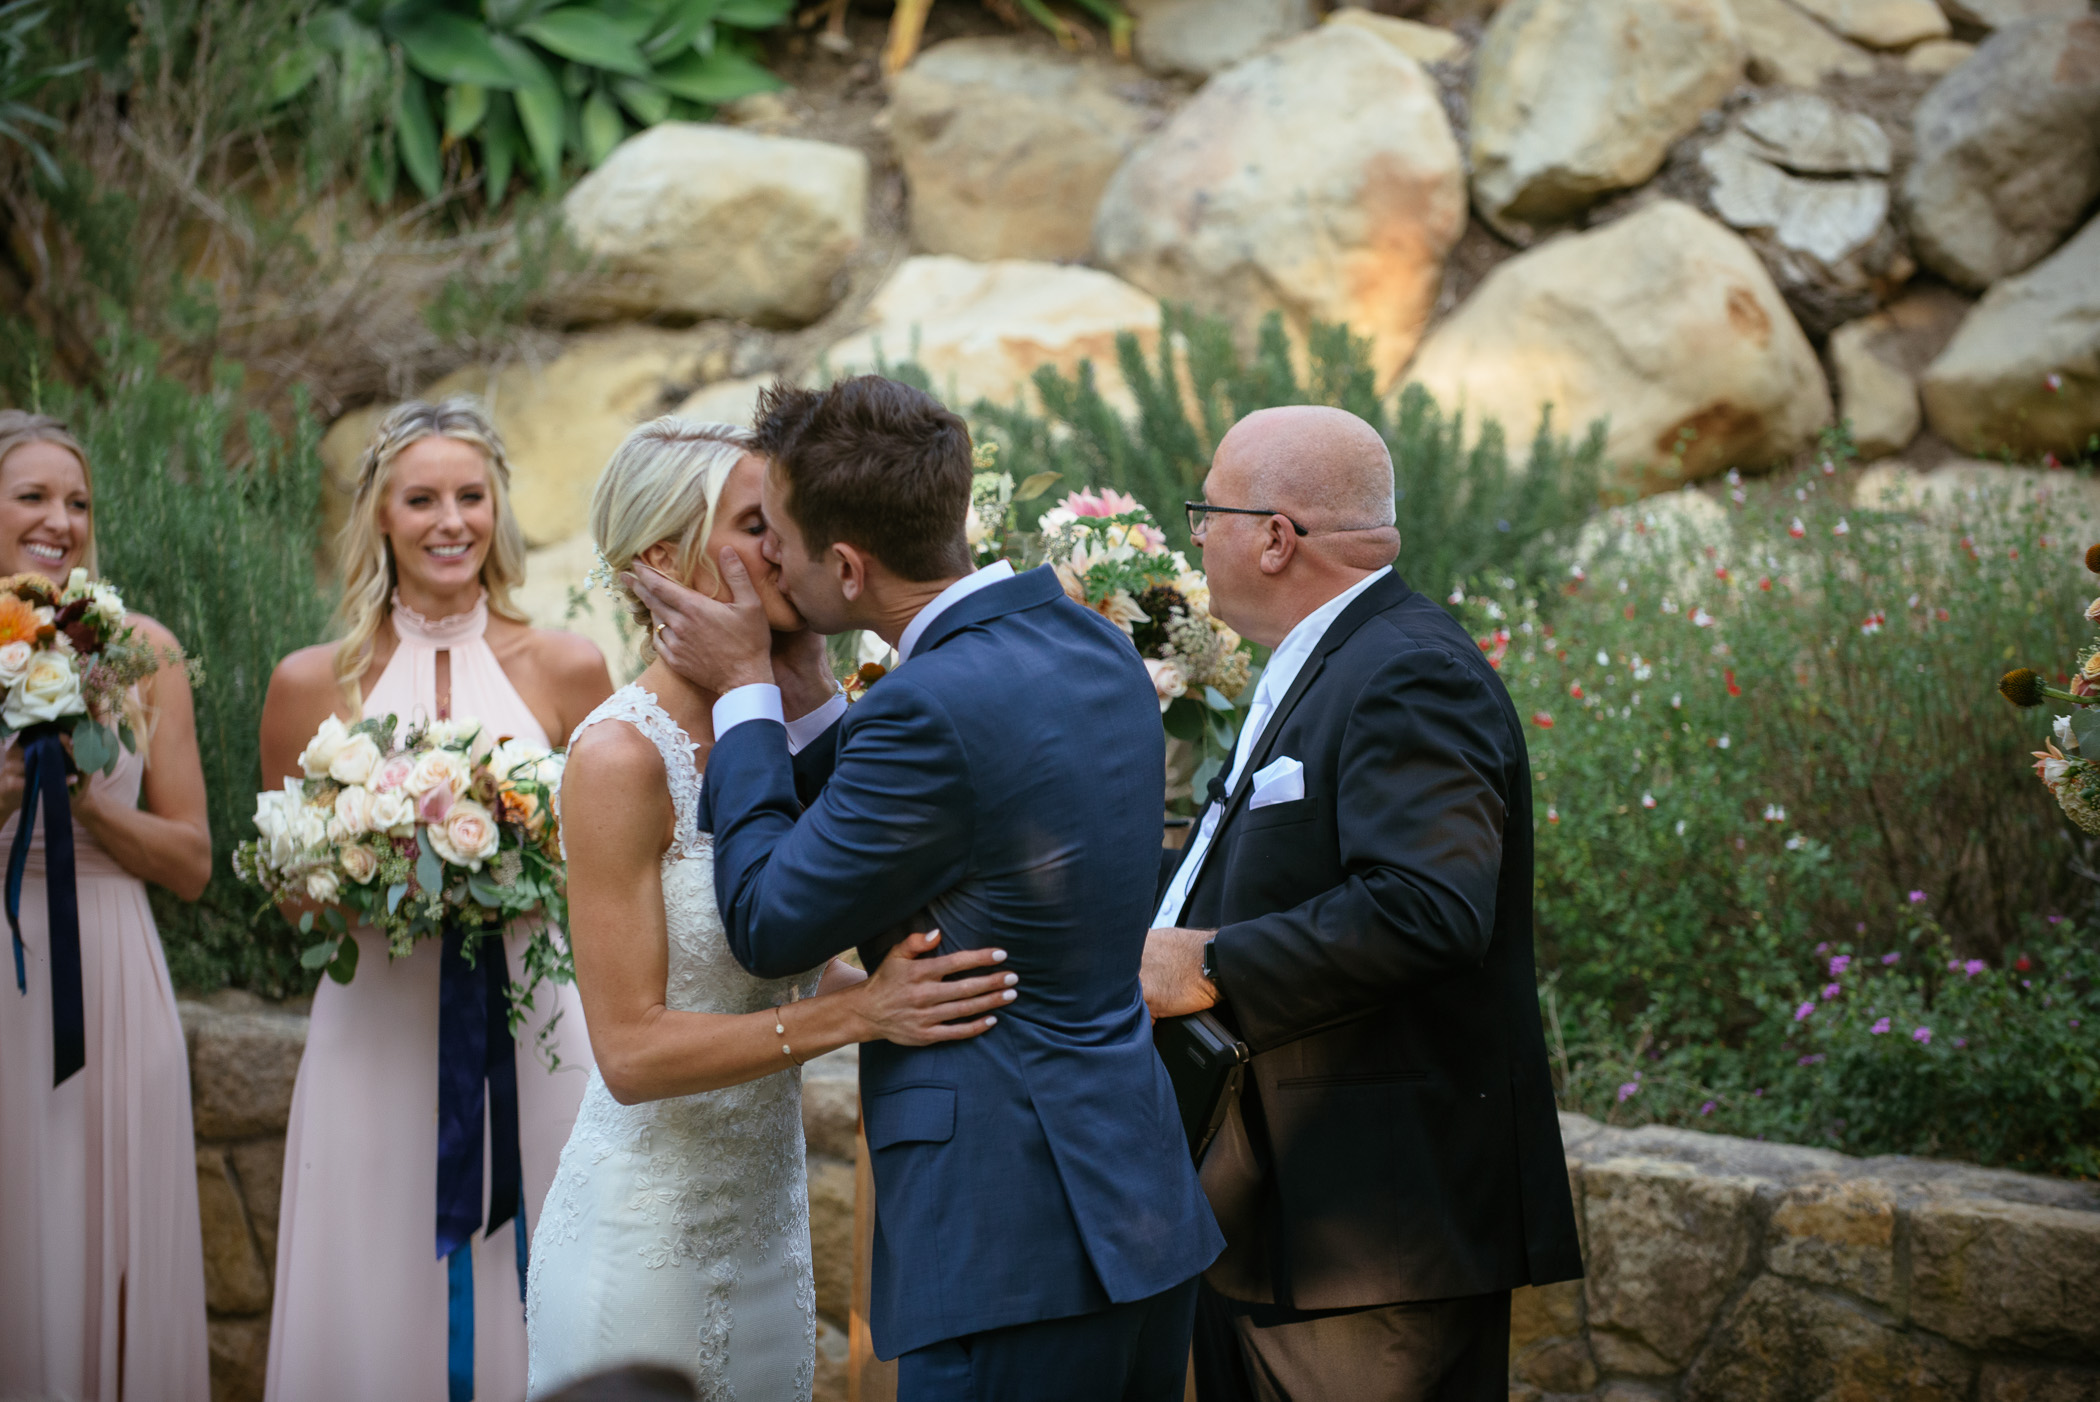 Elegant Santa Barbara Wedding at Villa Verano-48.jpg